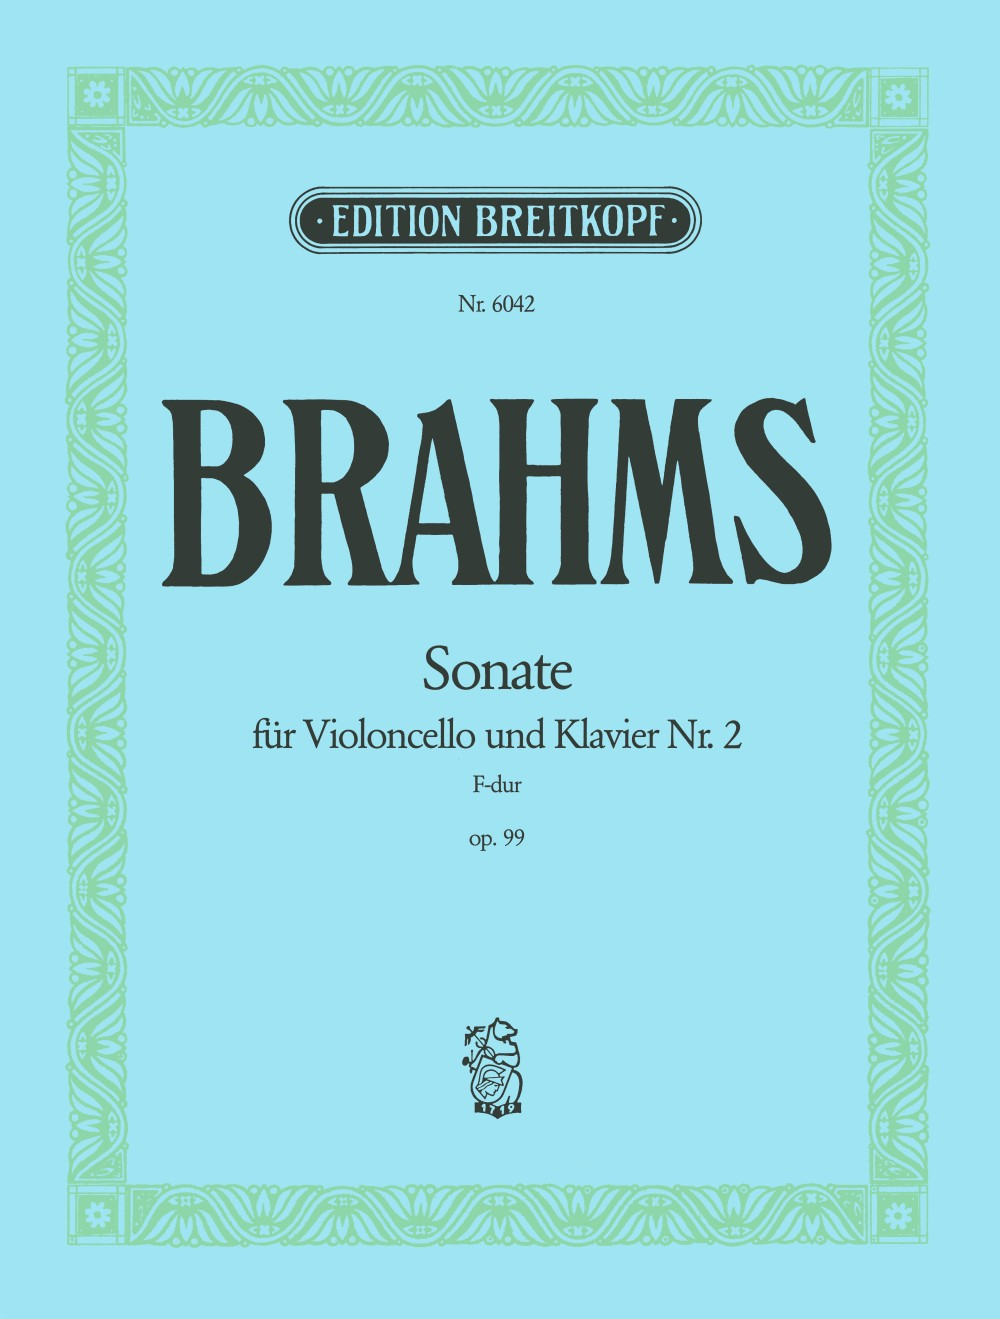 Brahms: Cello Sonata in F Major, Op. 99